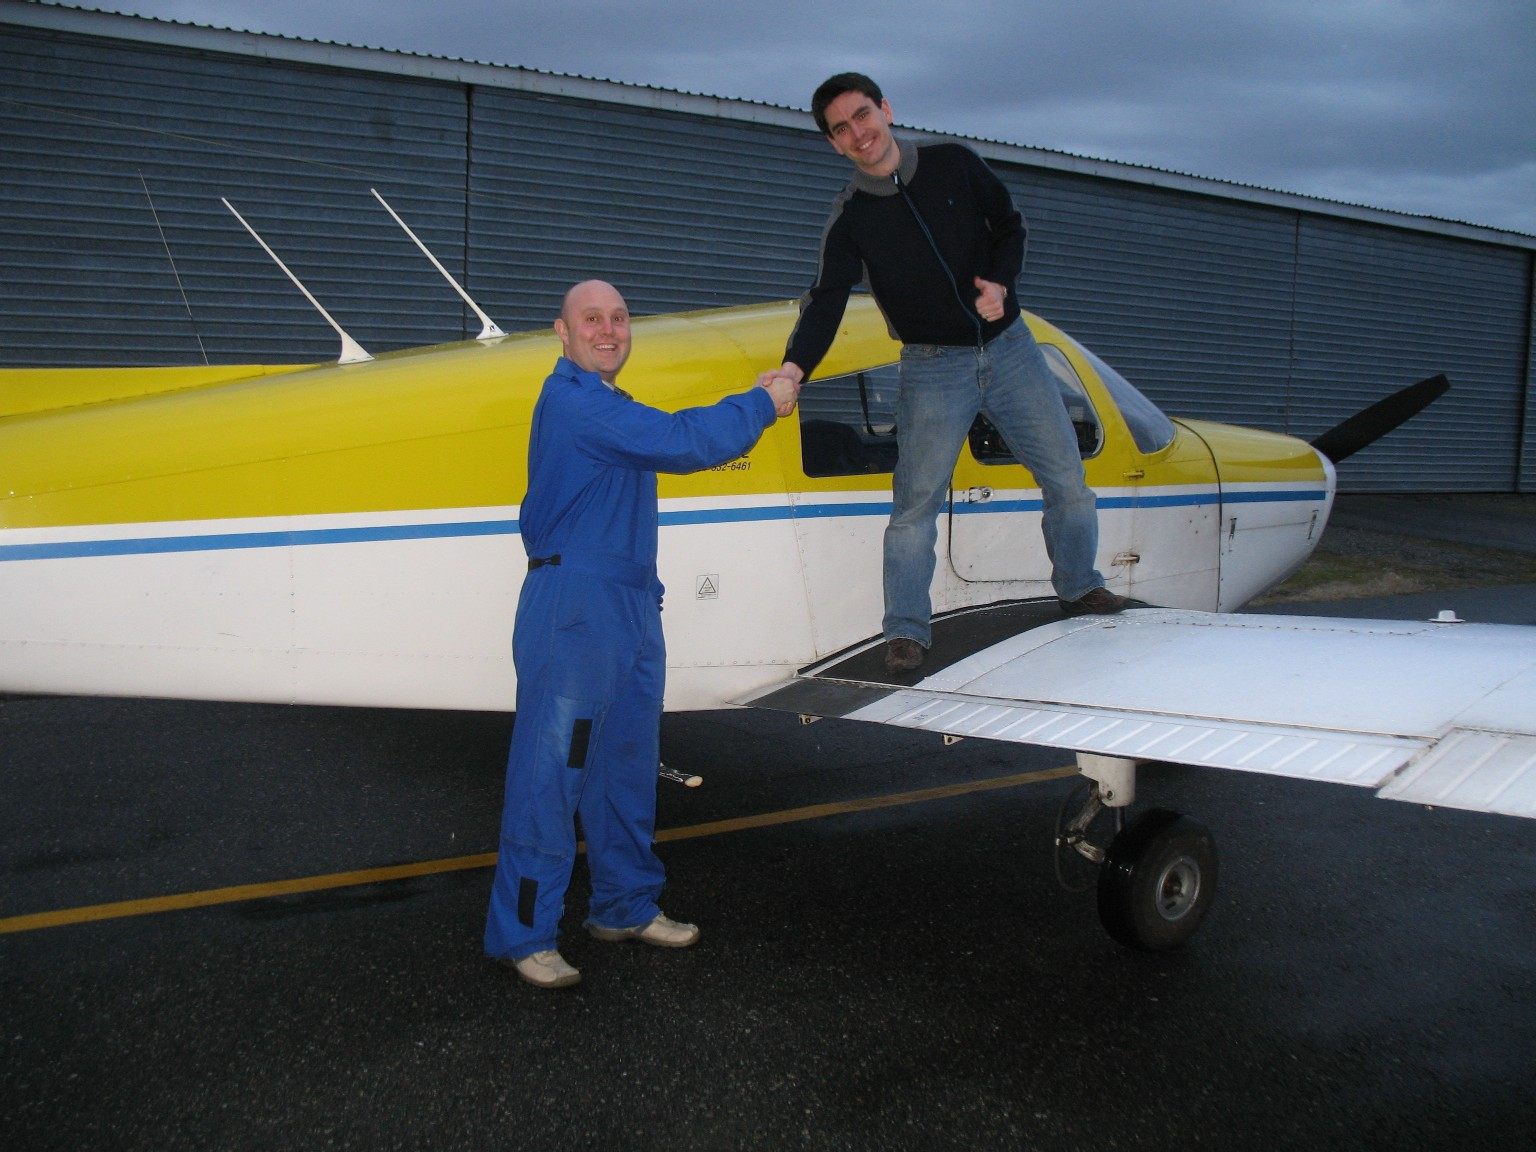 Jonathan King receives congratulations from his Flight Instructor, Rod Giesbrecht, after the completion of Jon's First Solo Flight on January 25, 2009 in Cherokee GODP.  Langley Flying School.